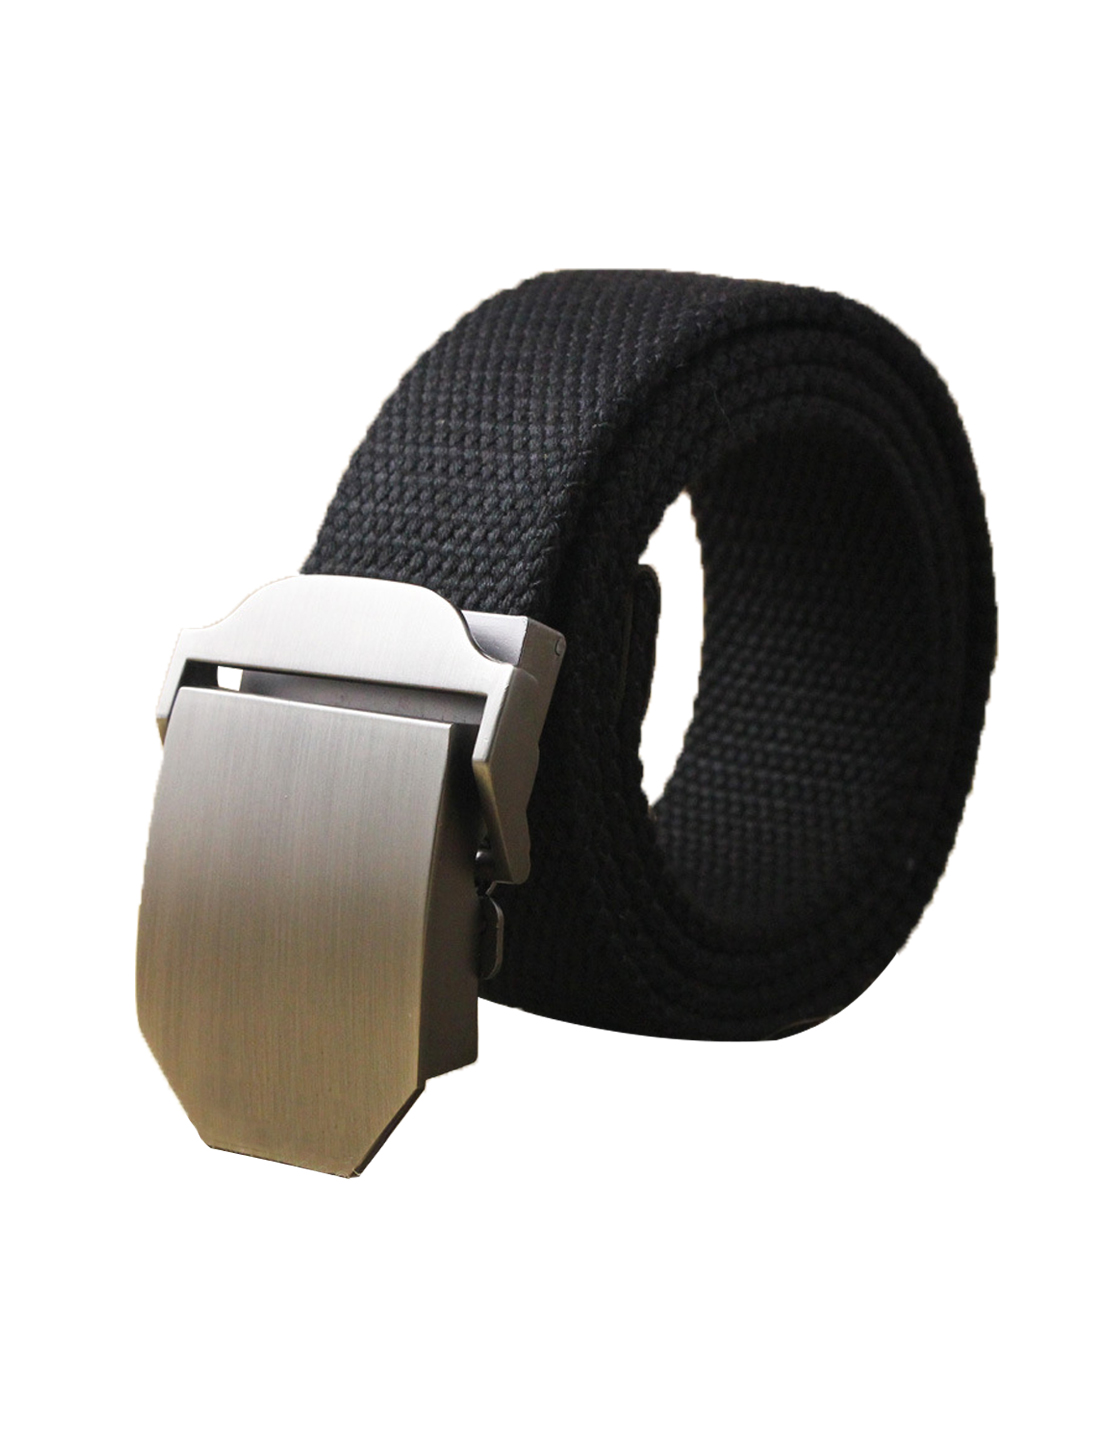 "Men Canvas Automatic Buckle Adjustable Holeless Belt Width 1 1/2"" Black"